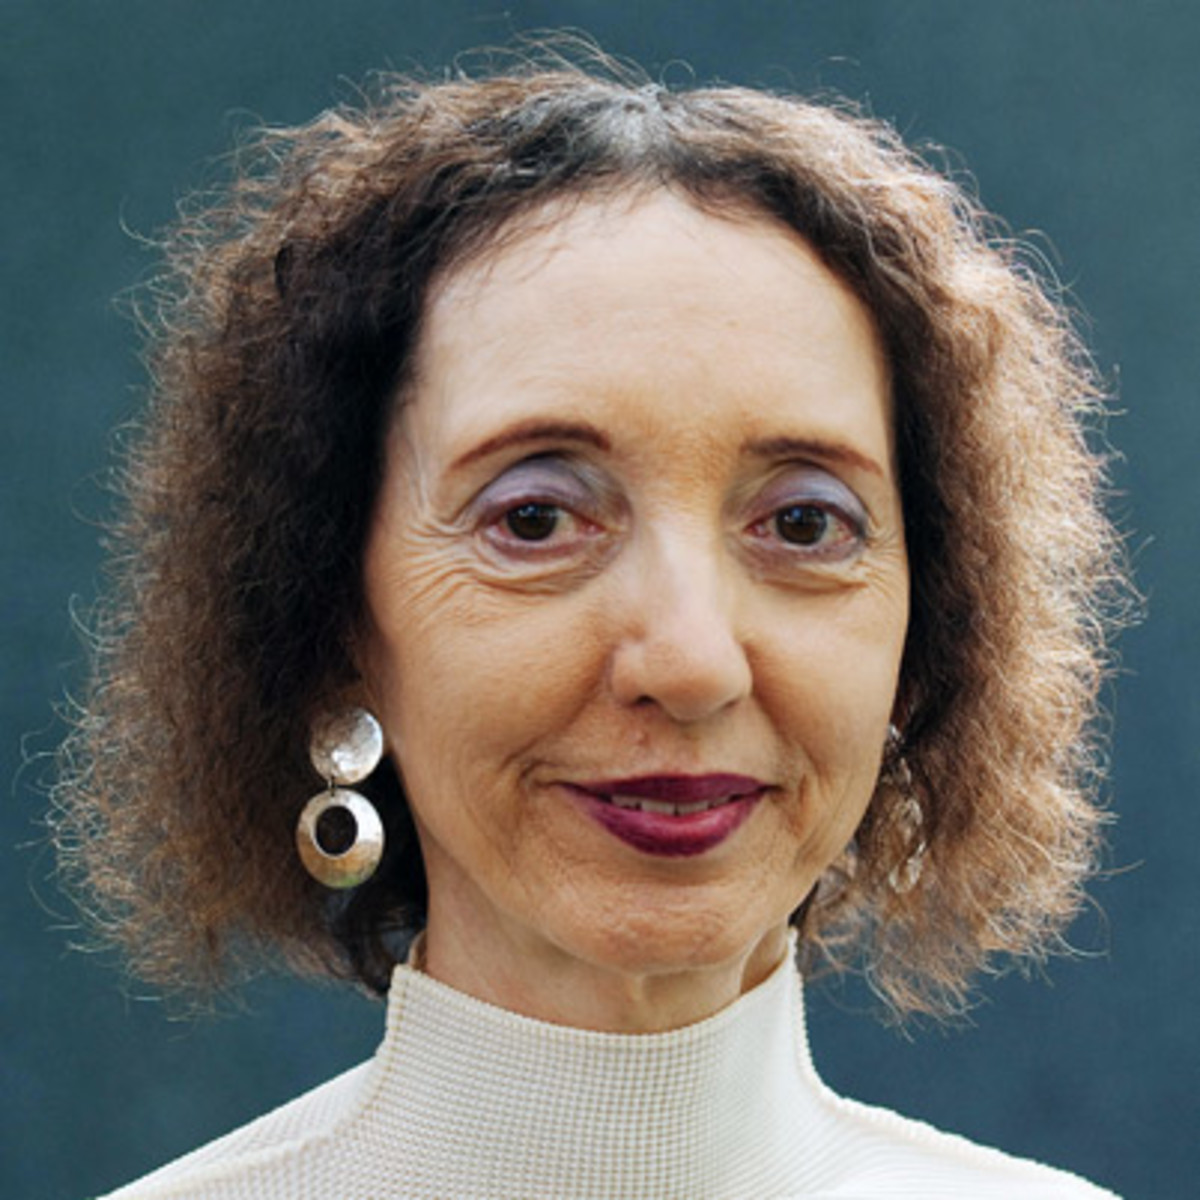 the joyce carol oates biography and life work The paperback of the joyce carol oates: a biography by greg biographer greg johnson examines the relationship between oates's life and work in this fascinating.